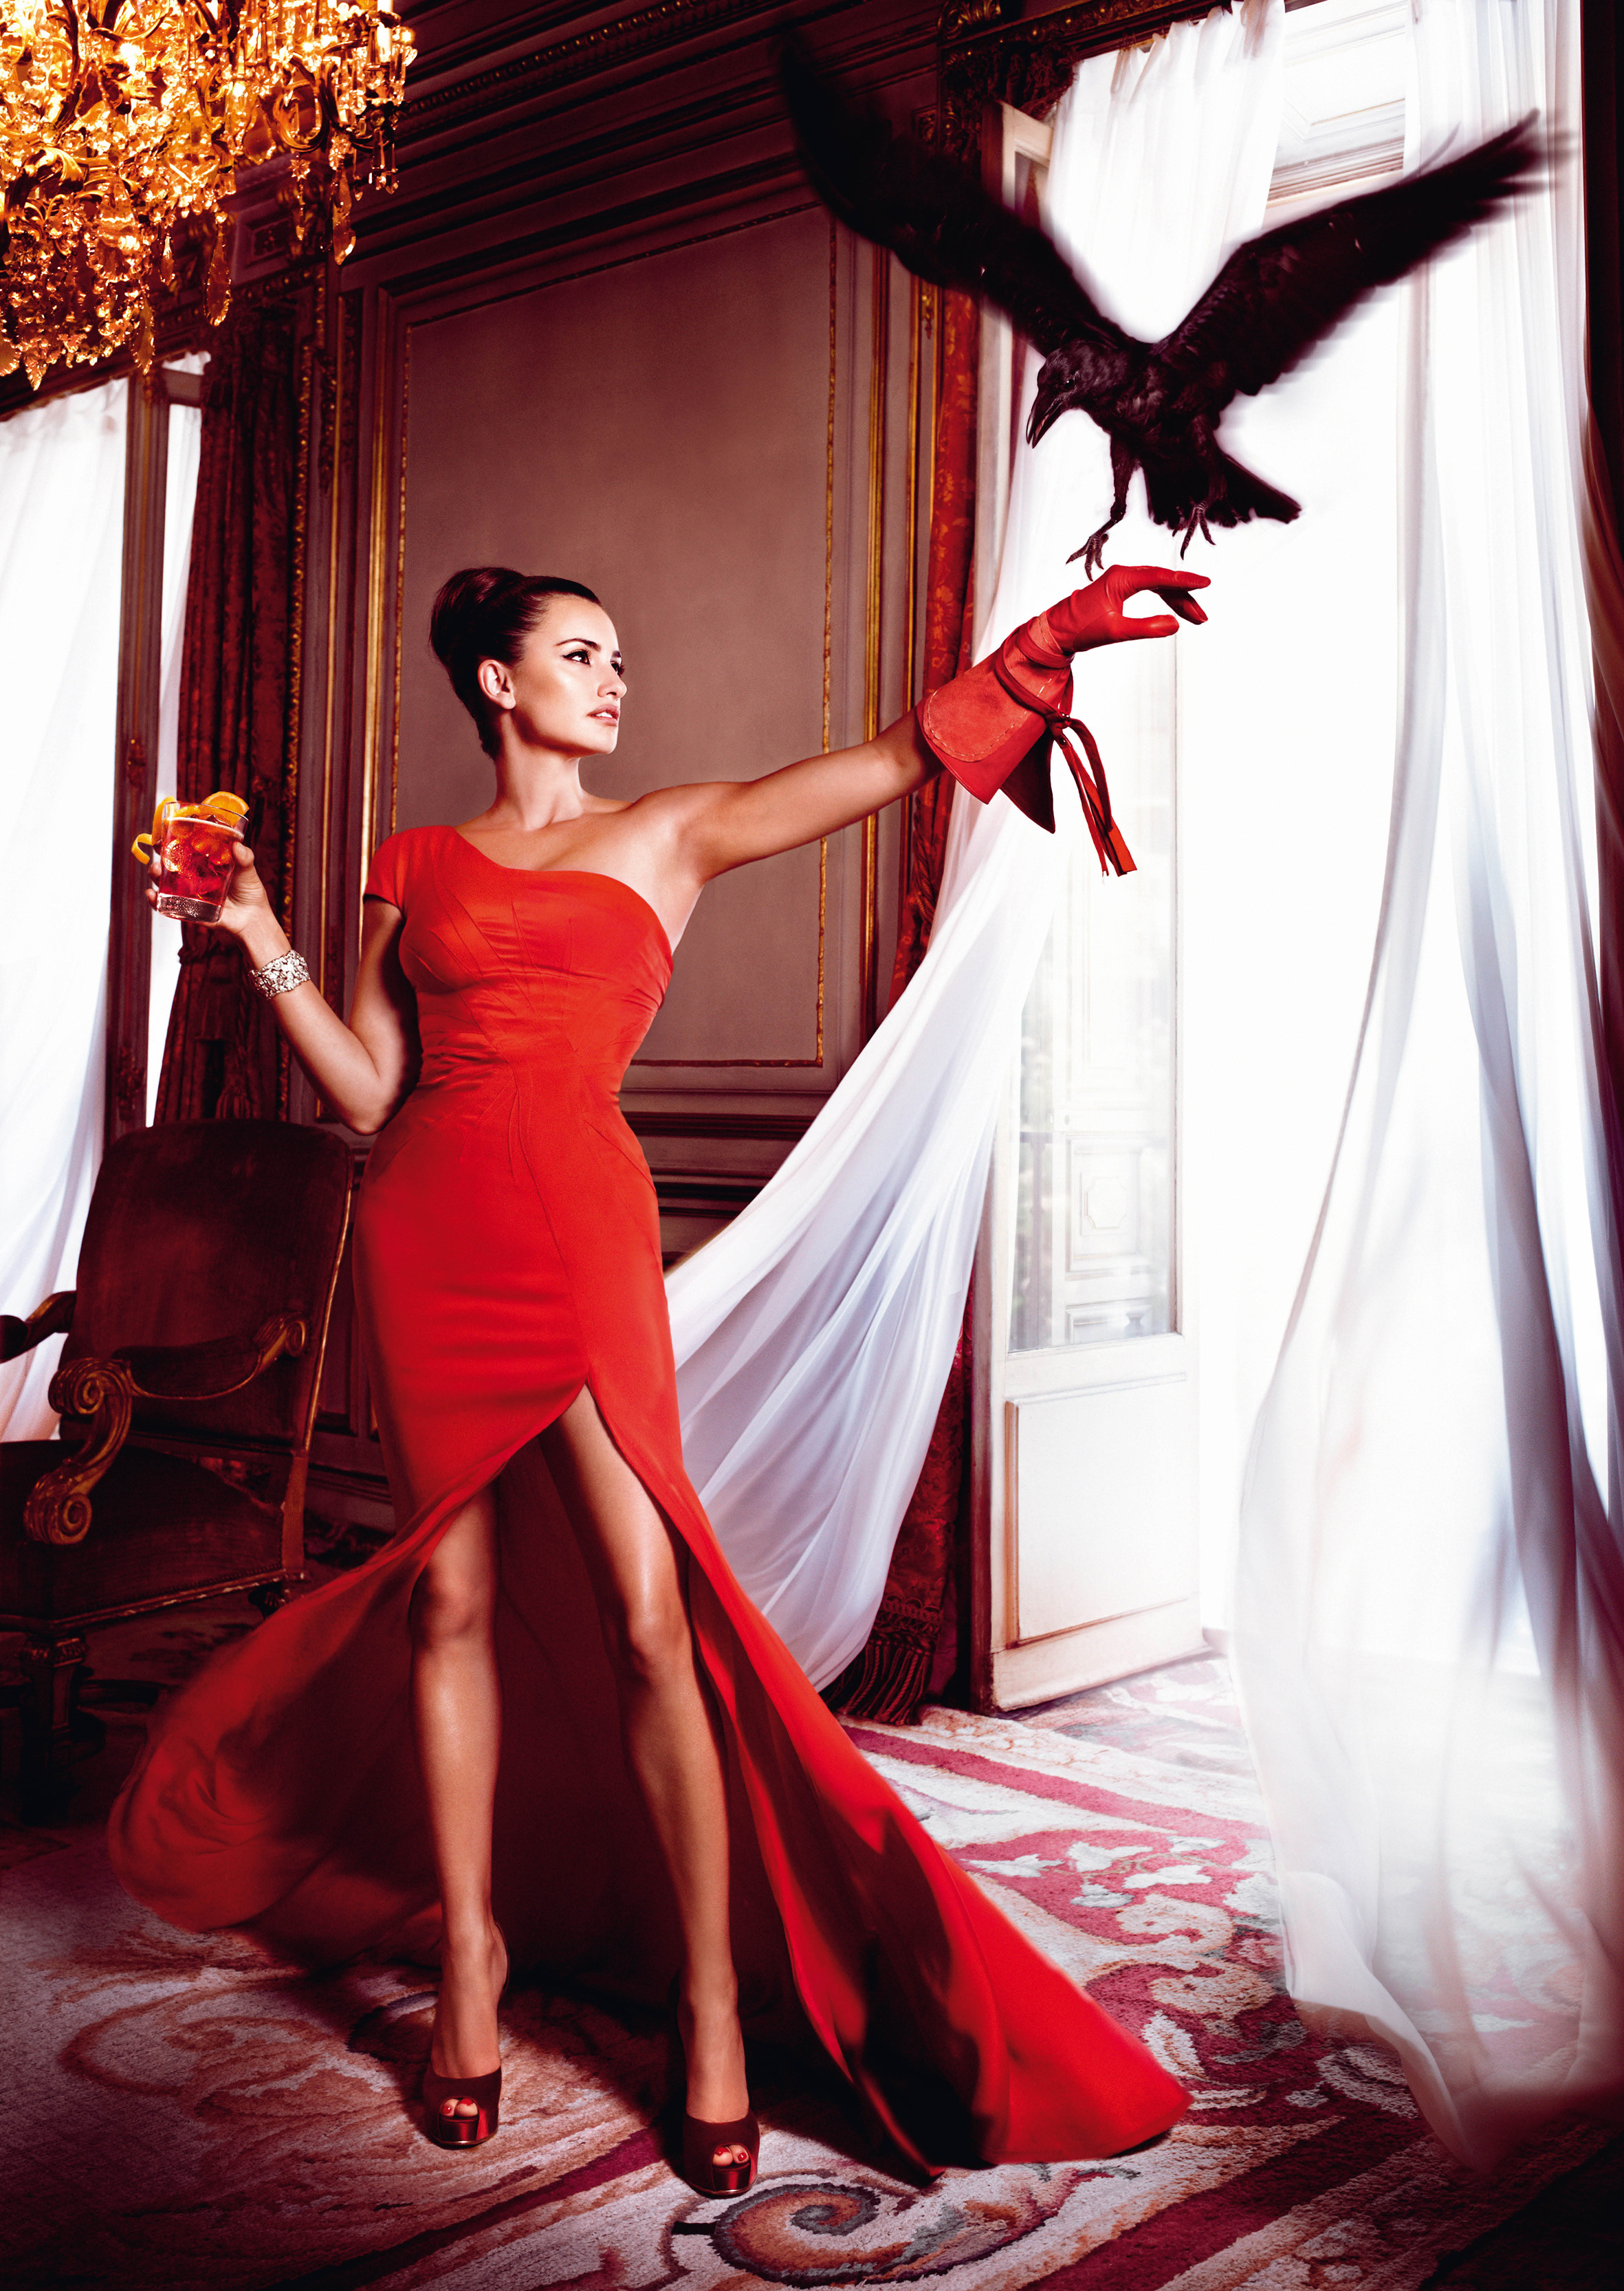 Penelope cruz Calendario Campari 2013